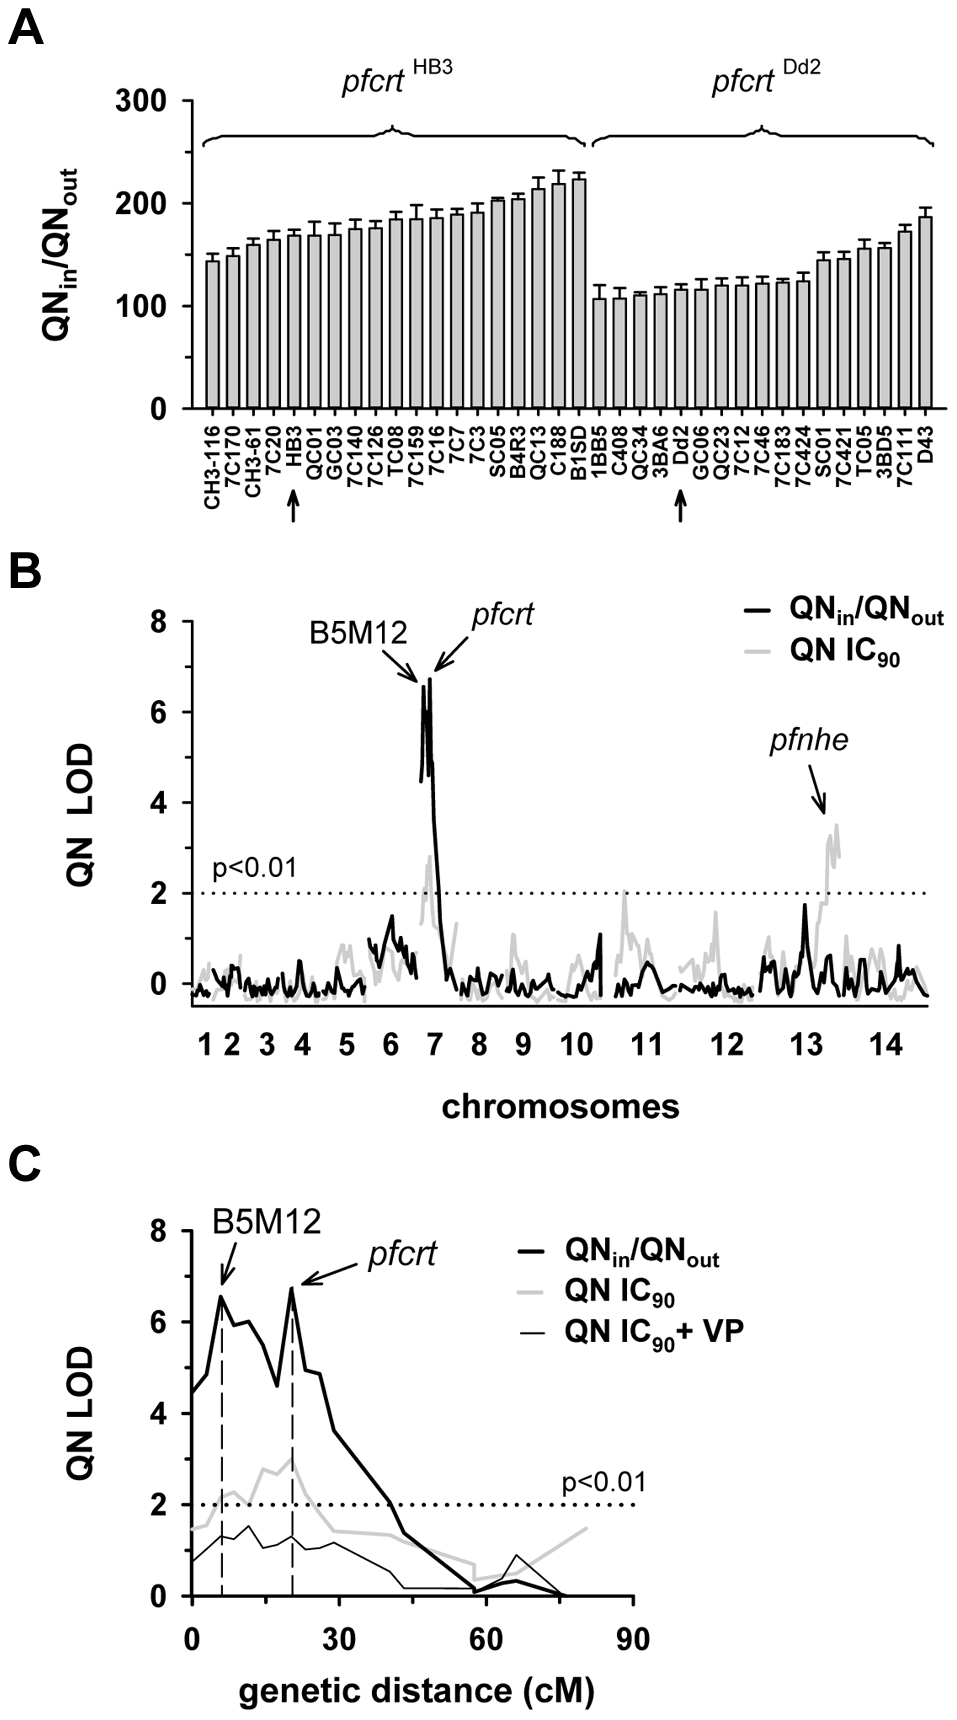 Linkage analyses on quinine responses in the HB3 x Dd2 cross.